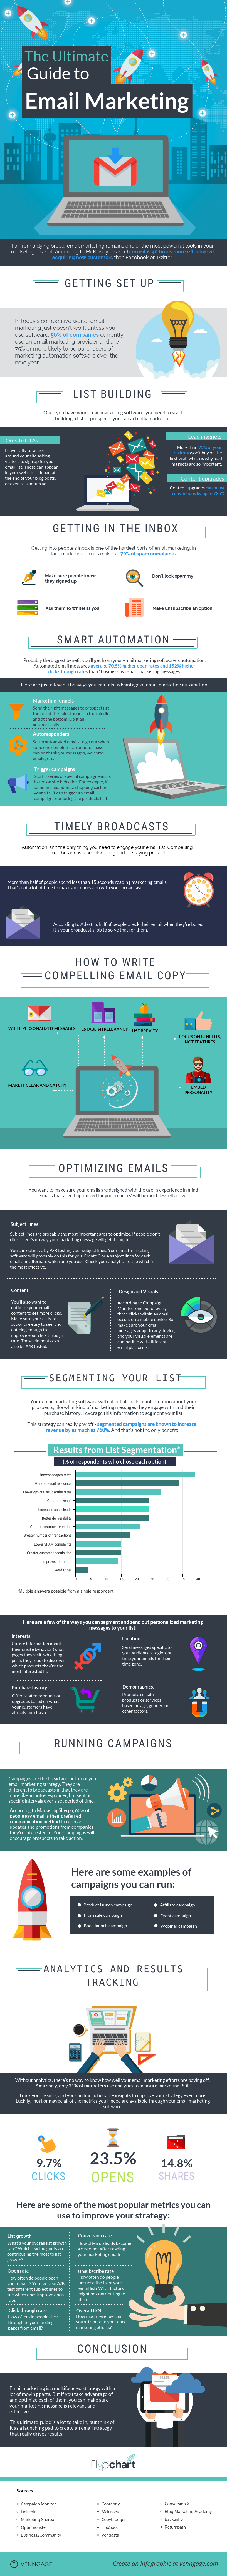 Ultimate Guide to Email Marketing - FlypChart - Infographic